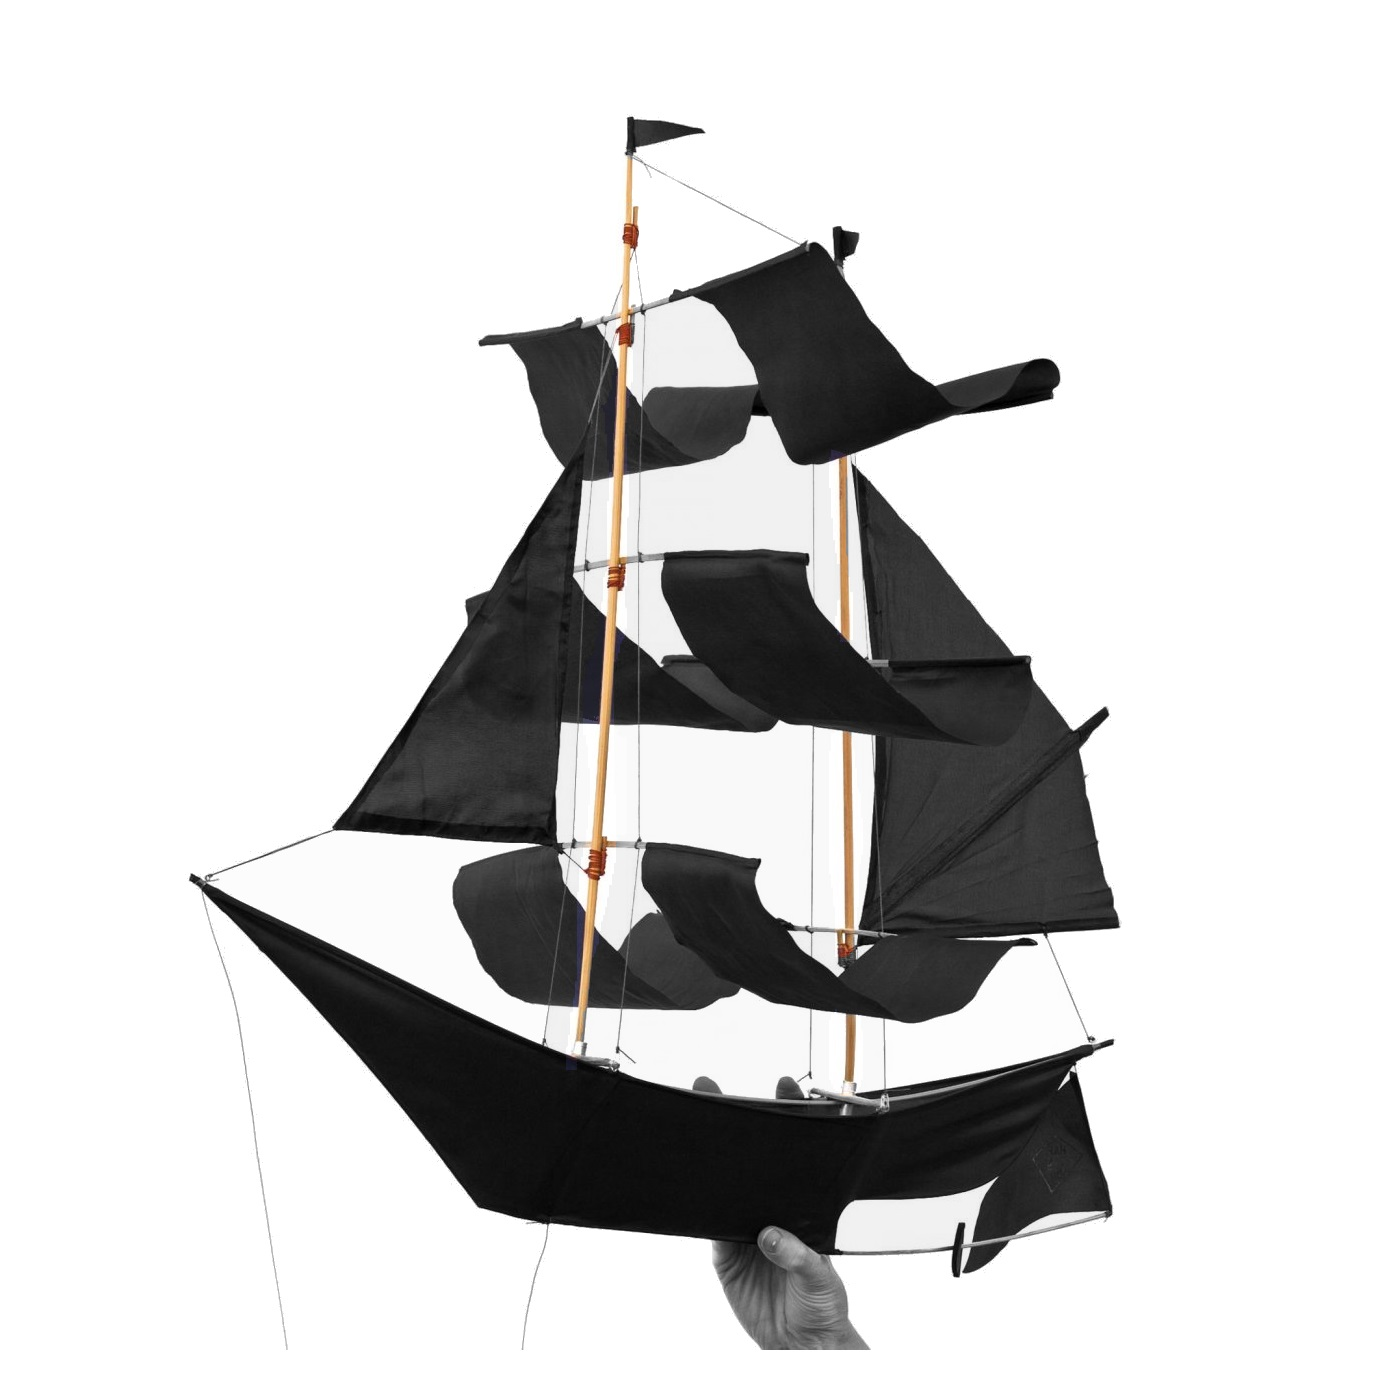 Skepp mobil Sailing Ship Kite svart, Haptic lab thumbnail